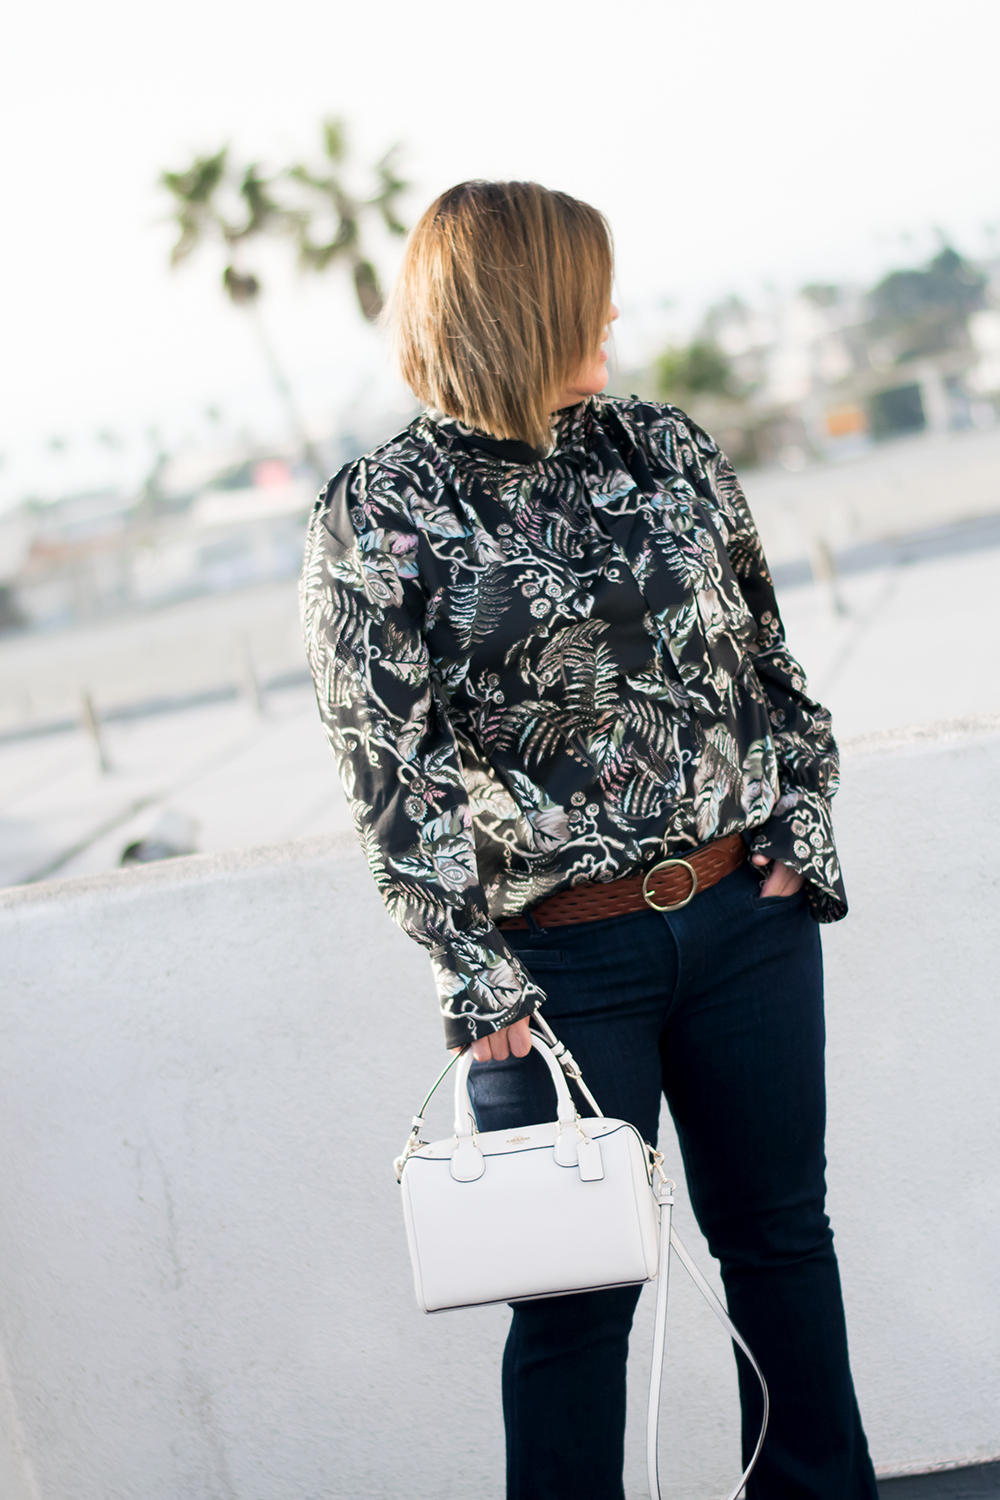 Closet Staples The Printed Blouse Wardrobe Basics Capsule Wardrobe Barefoot In LA Fashion Blog Stylist Best Outfits of 2018 0072